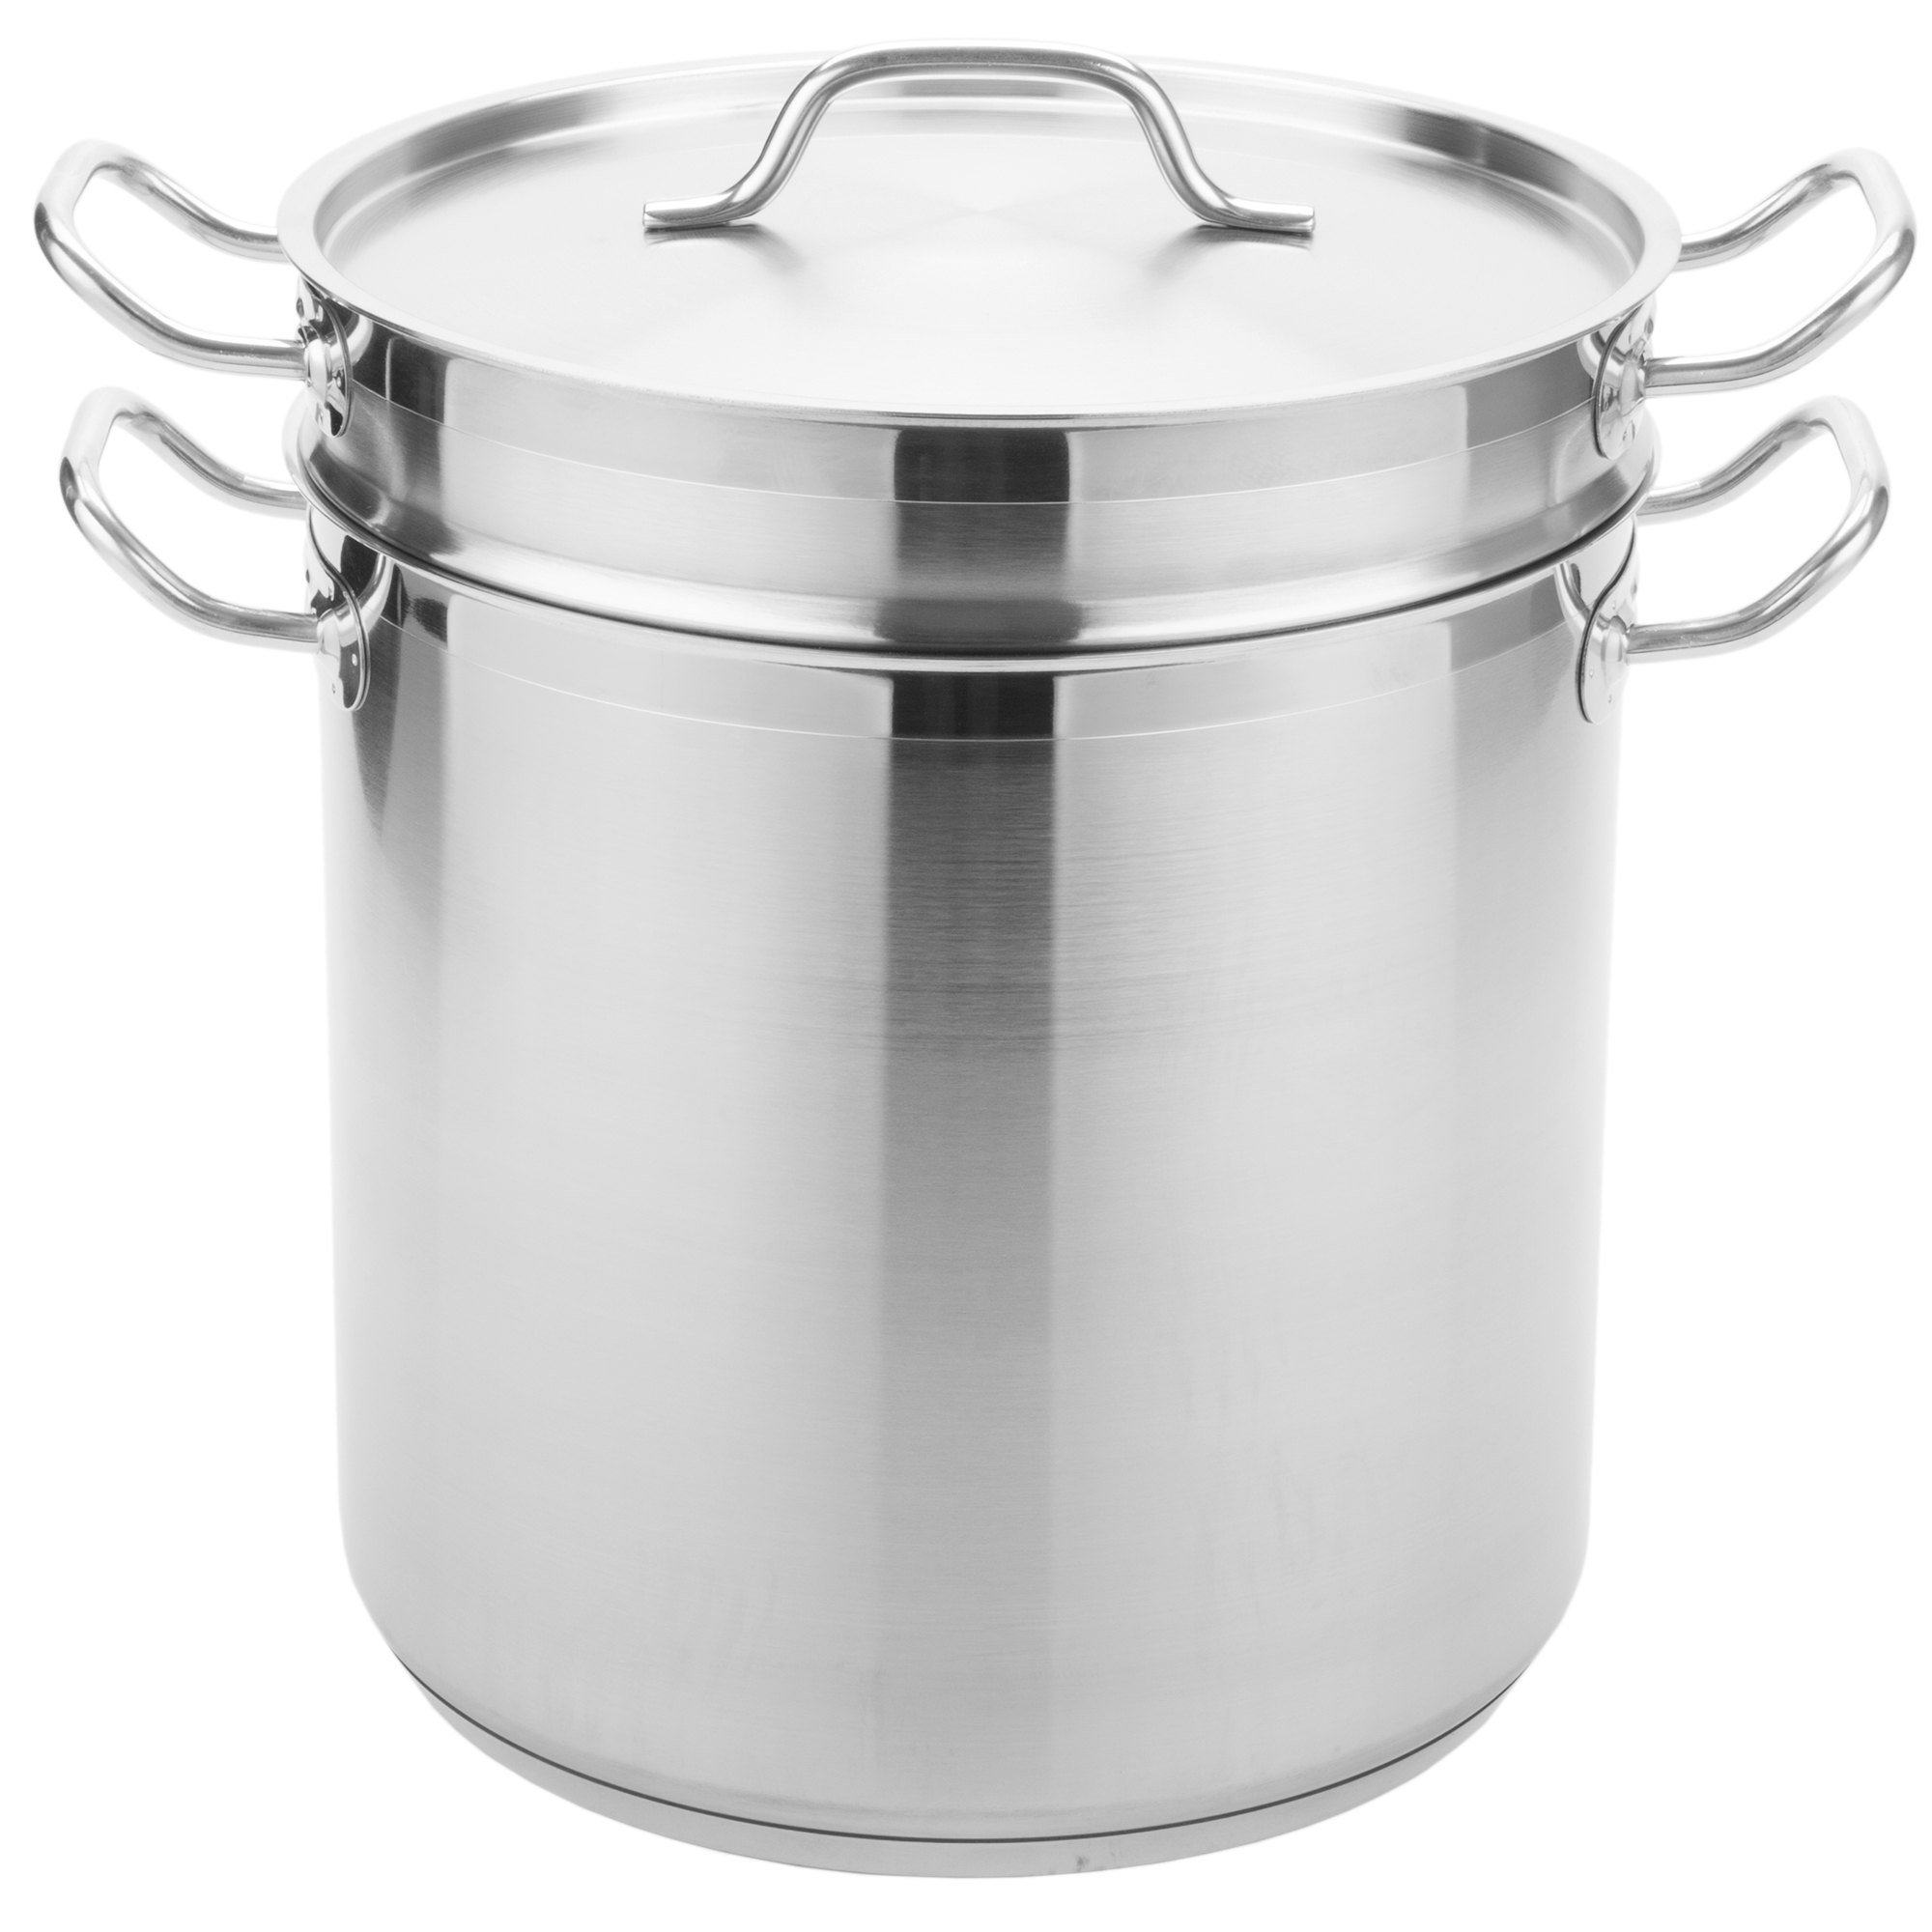 TableTop King 20 Qt. Stainless Steel Aluminum-Clad Pasta Cooker Combination